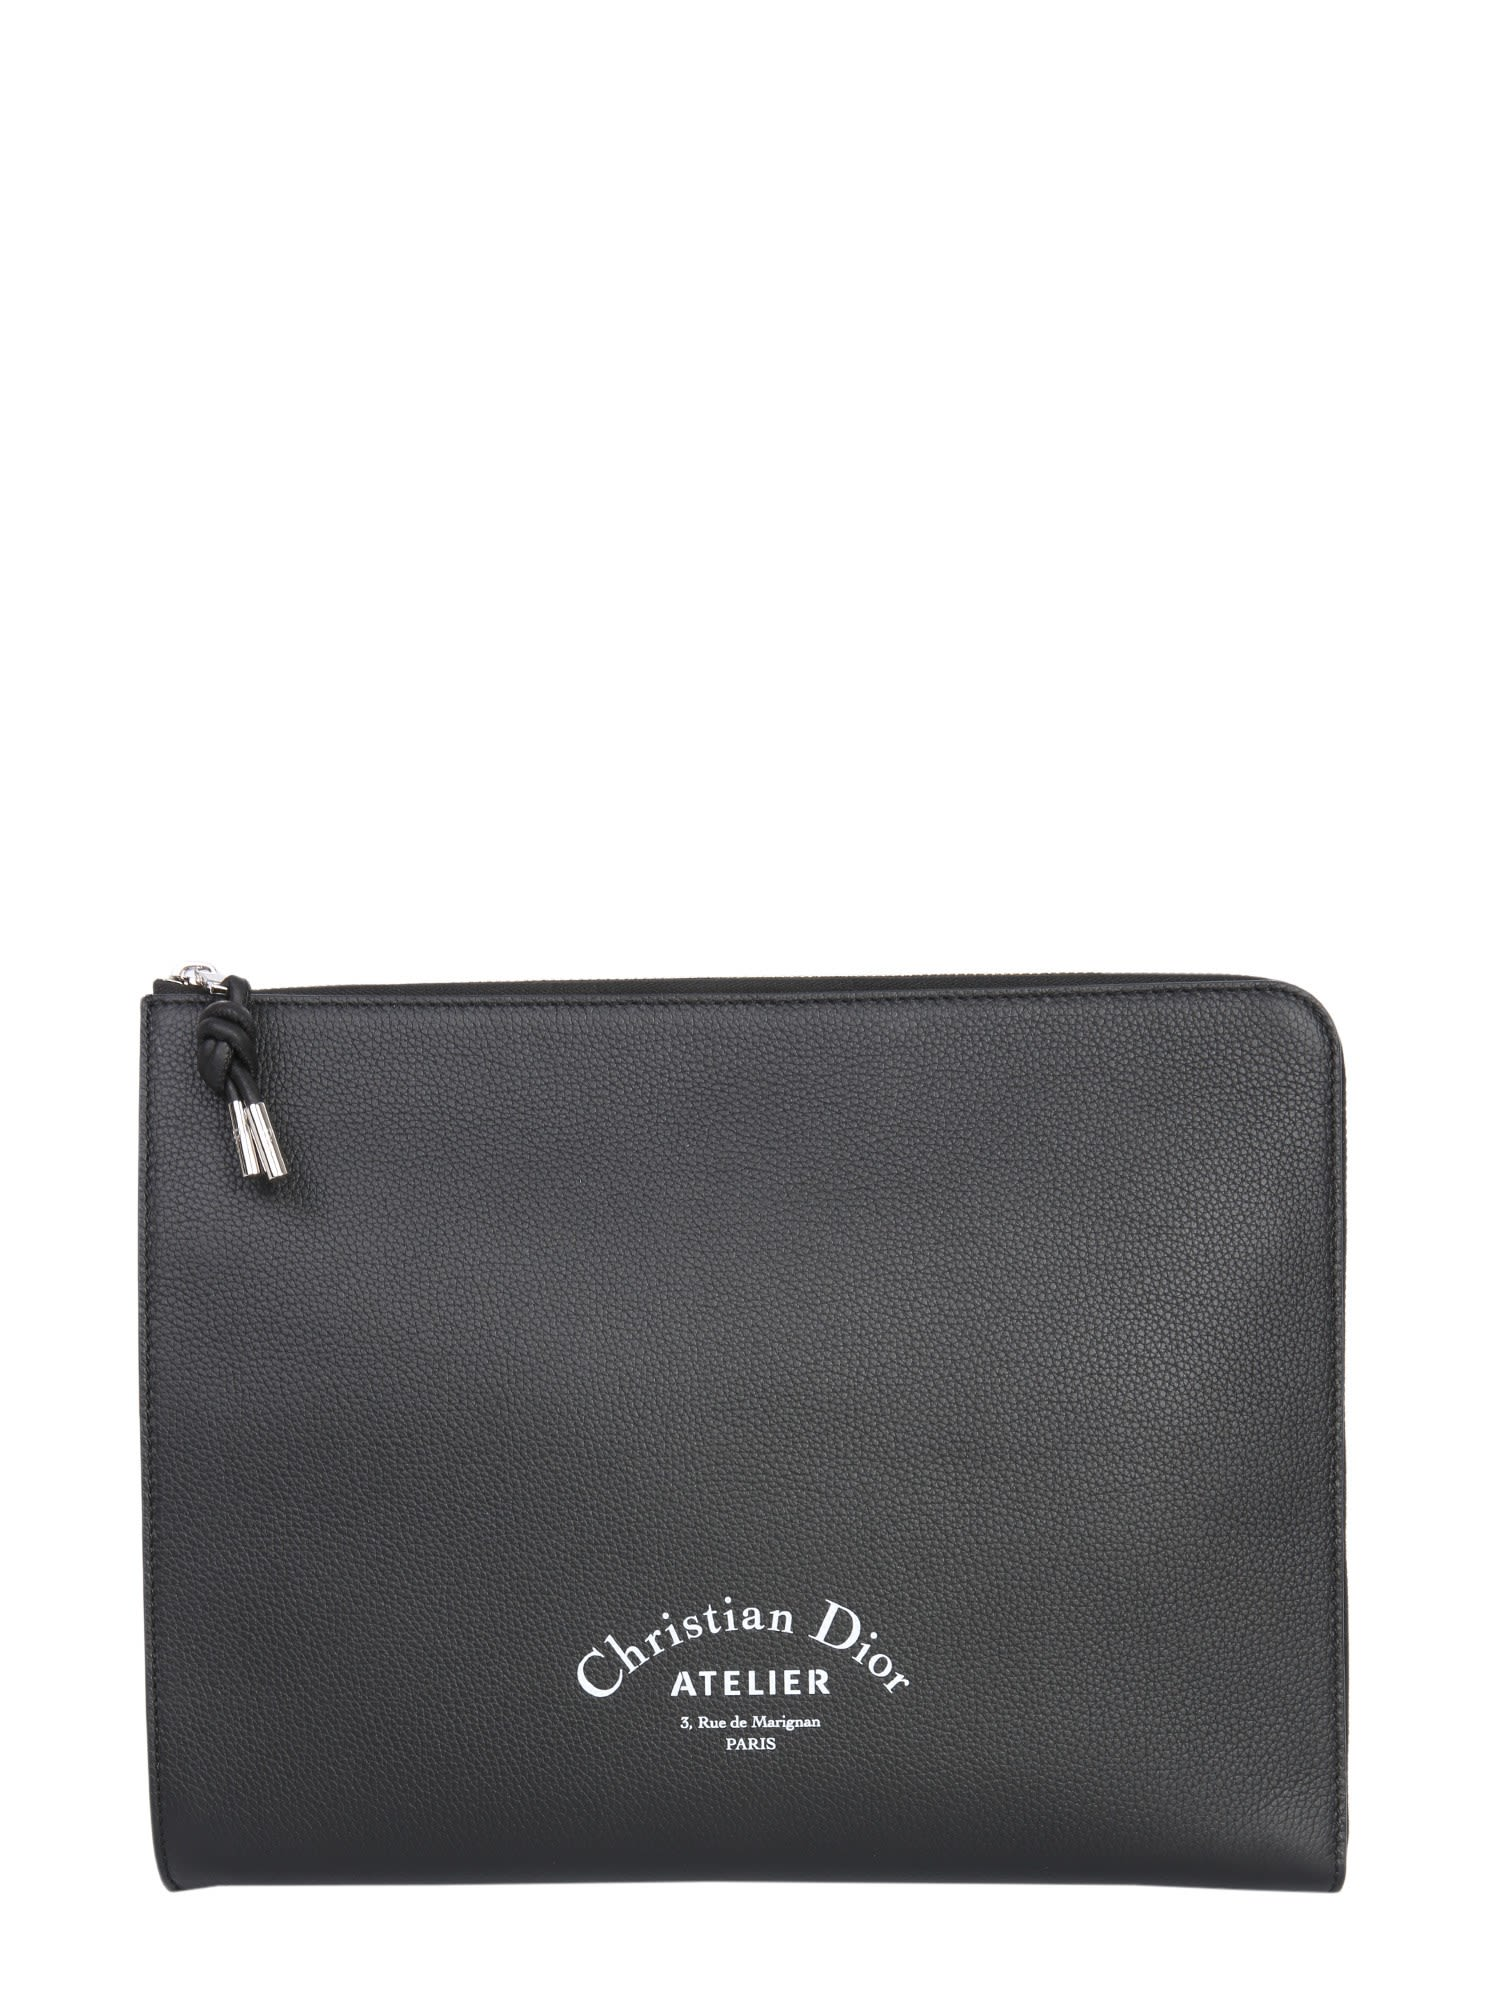 DIOR HOMME Leather Clutch, Nero